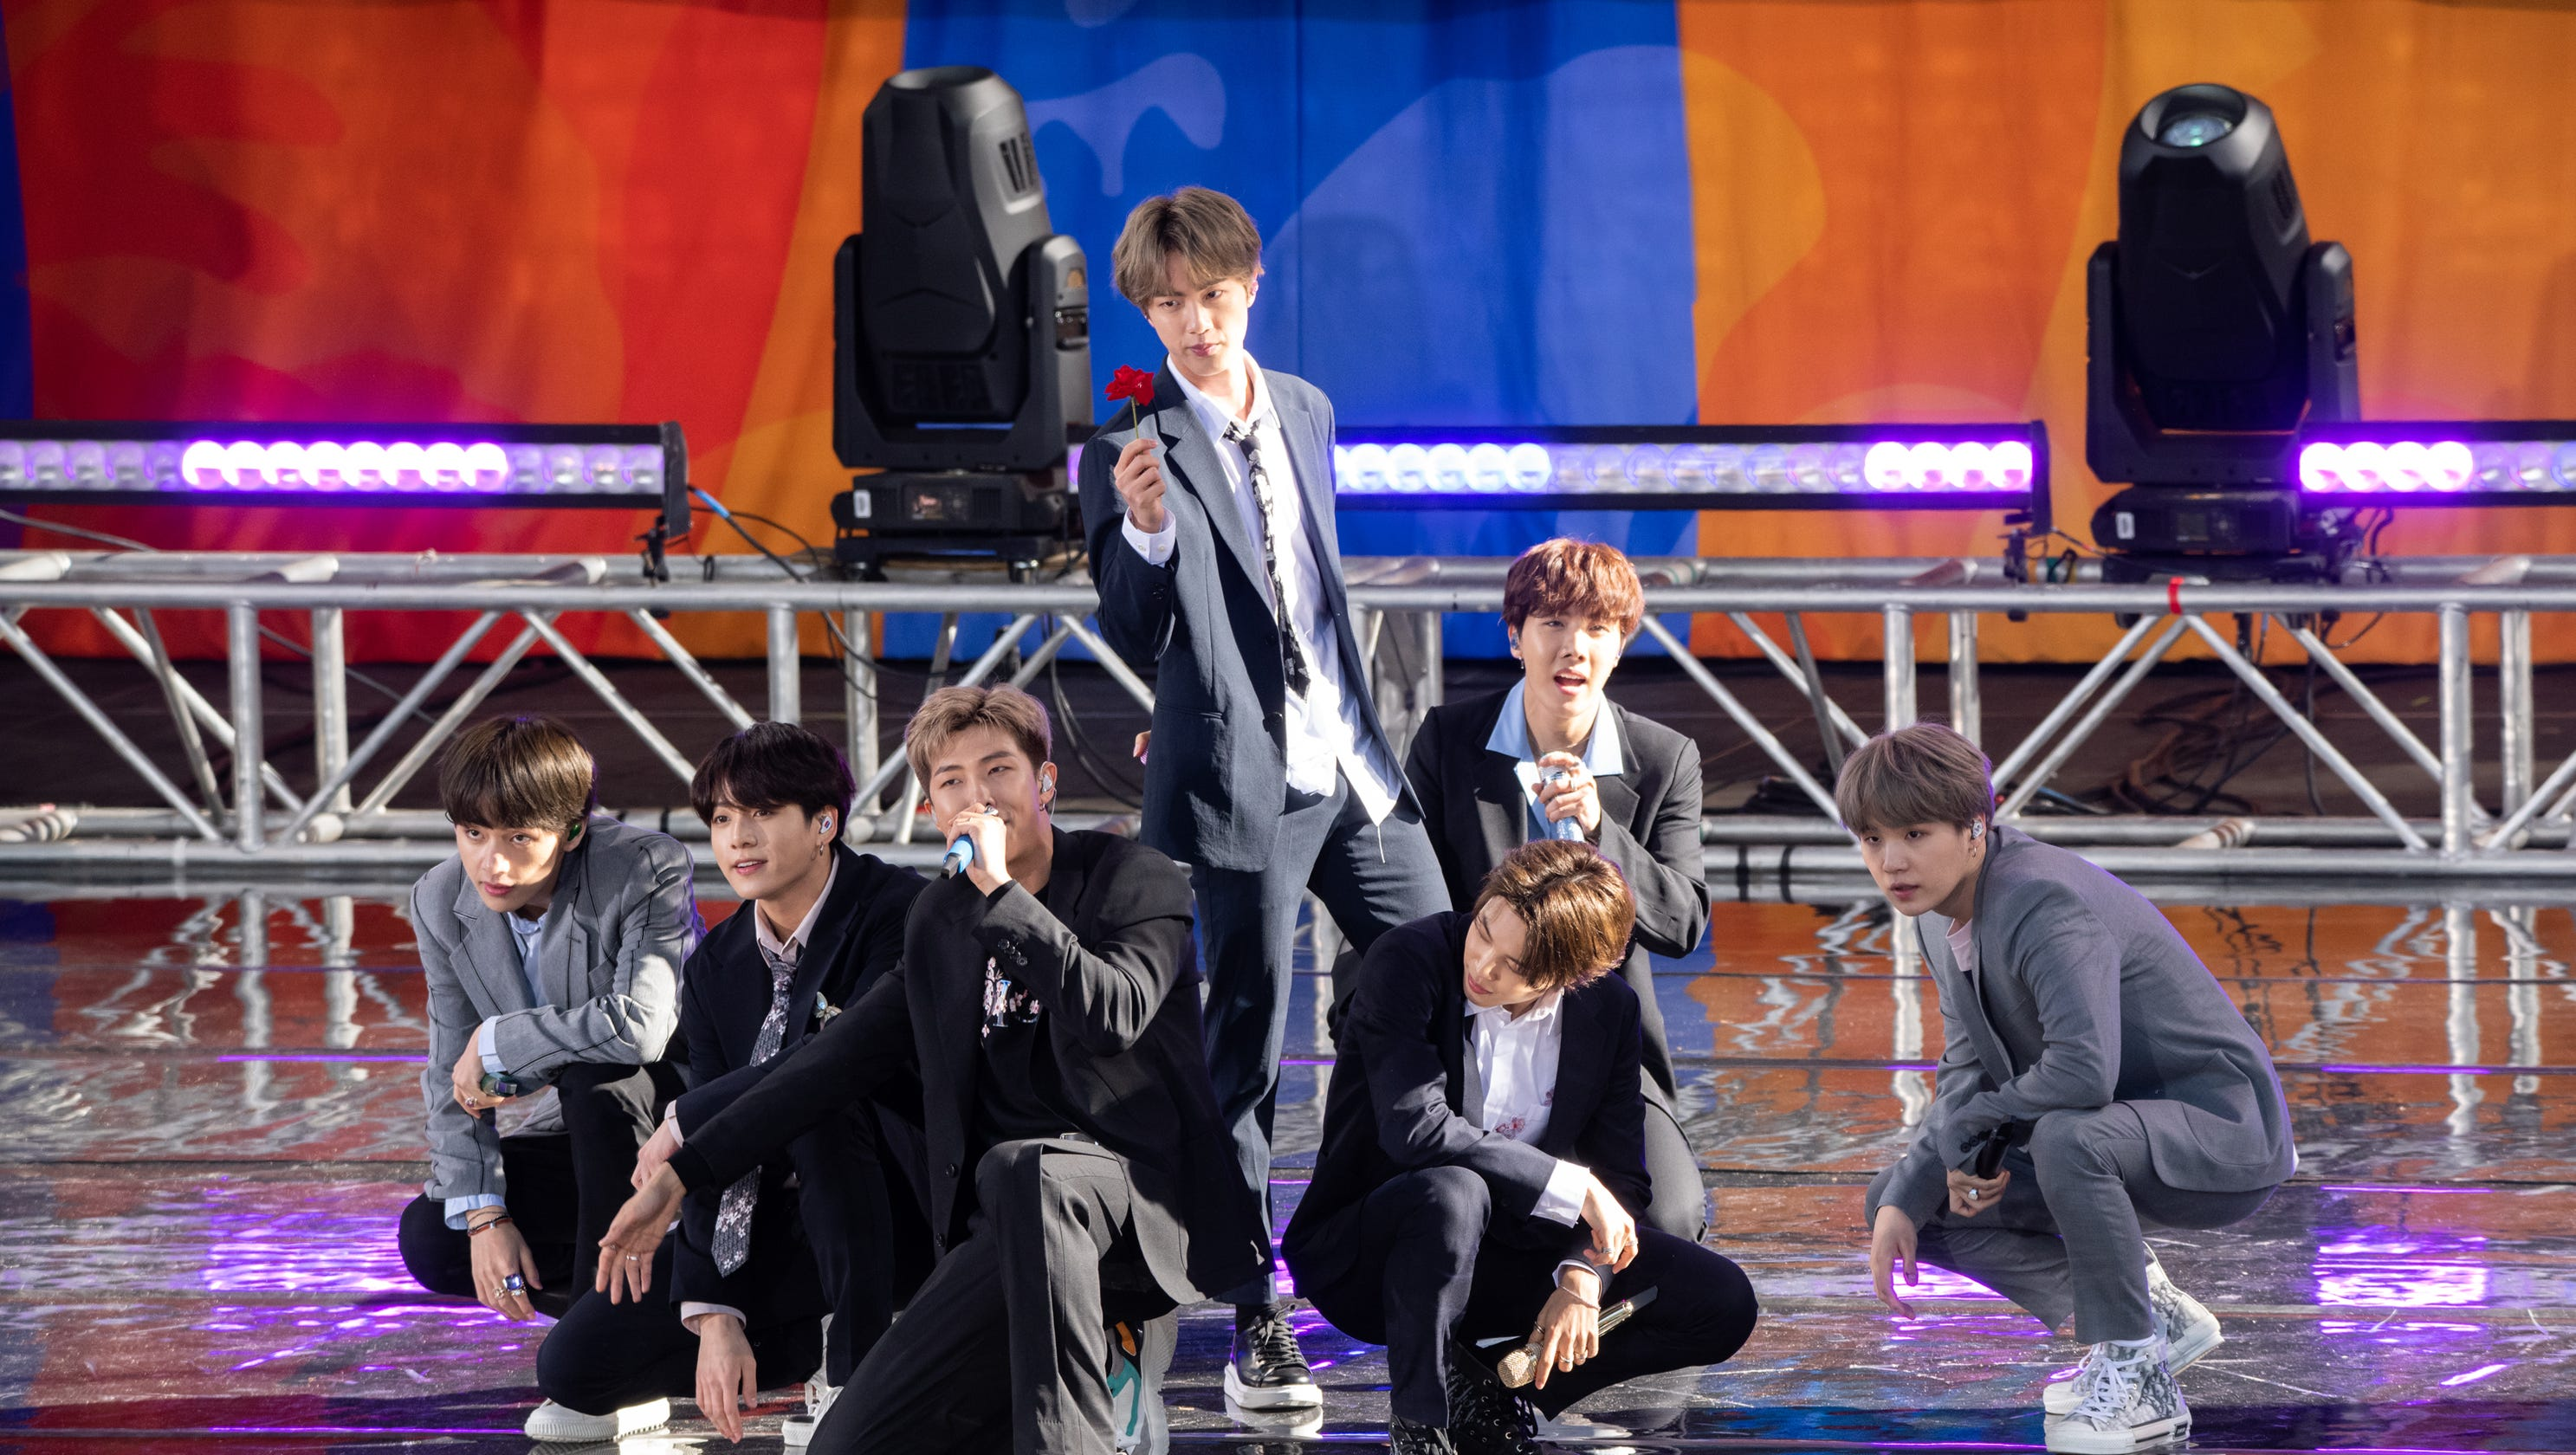 BTS at MetLife Stadium in East Rutherford: Everything you need to know